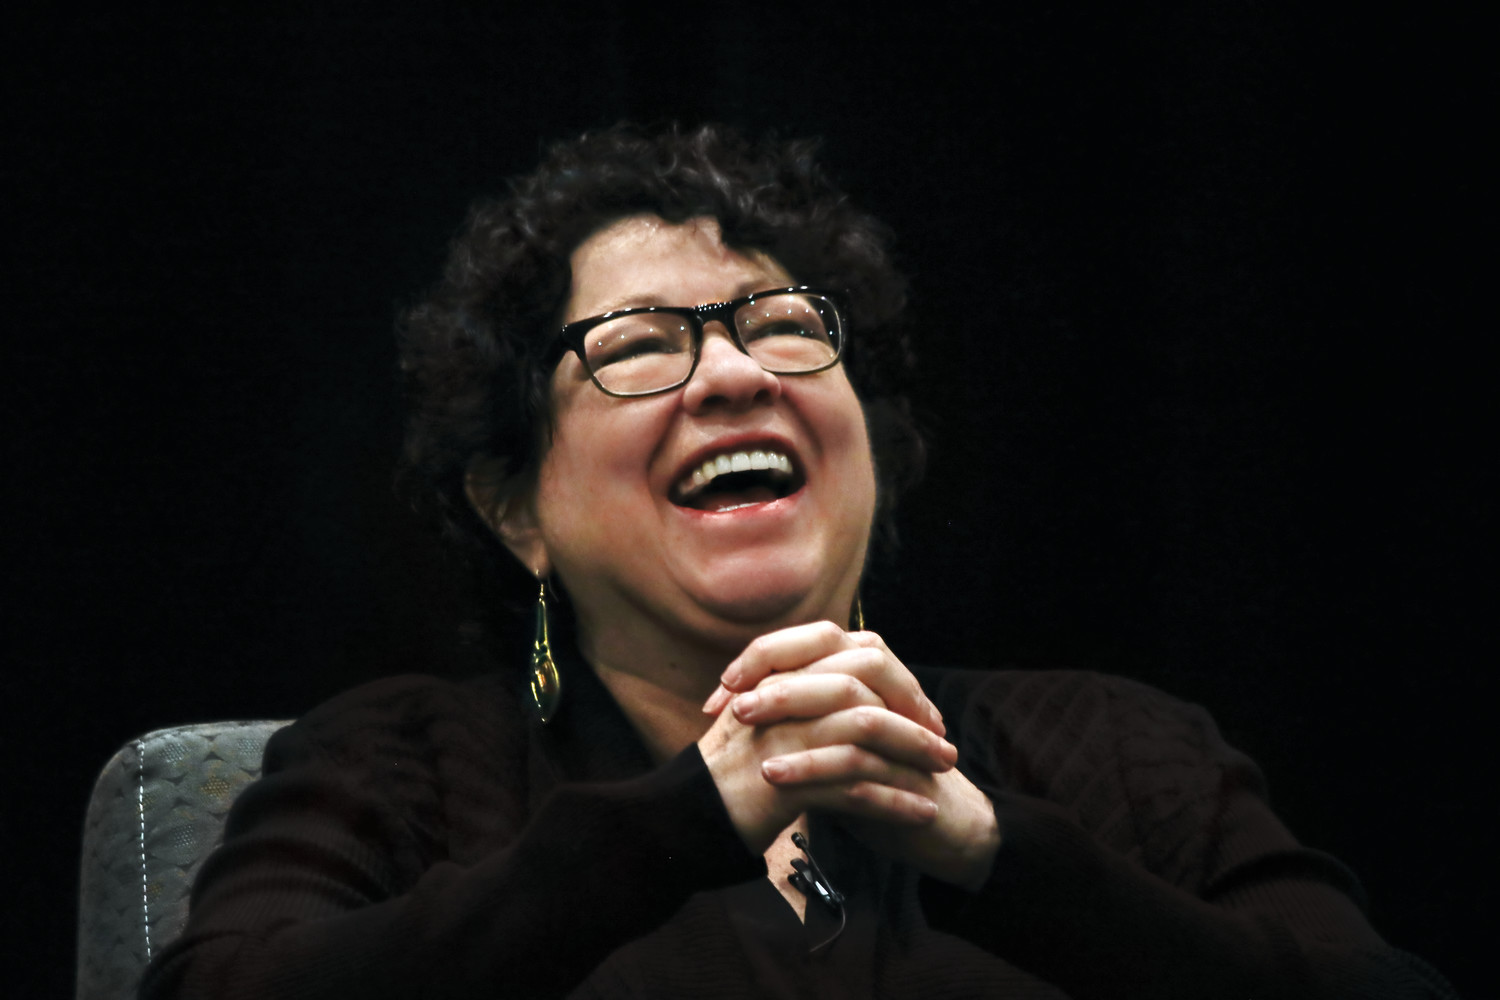 Justice Sonia Sotomayor made it clear that she did not want to miss Monday night's ALCS game during her visit at Hofstra University Law School on Monday.